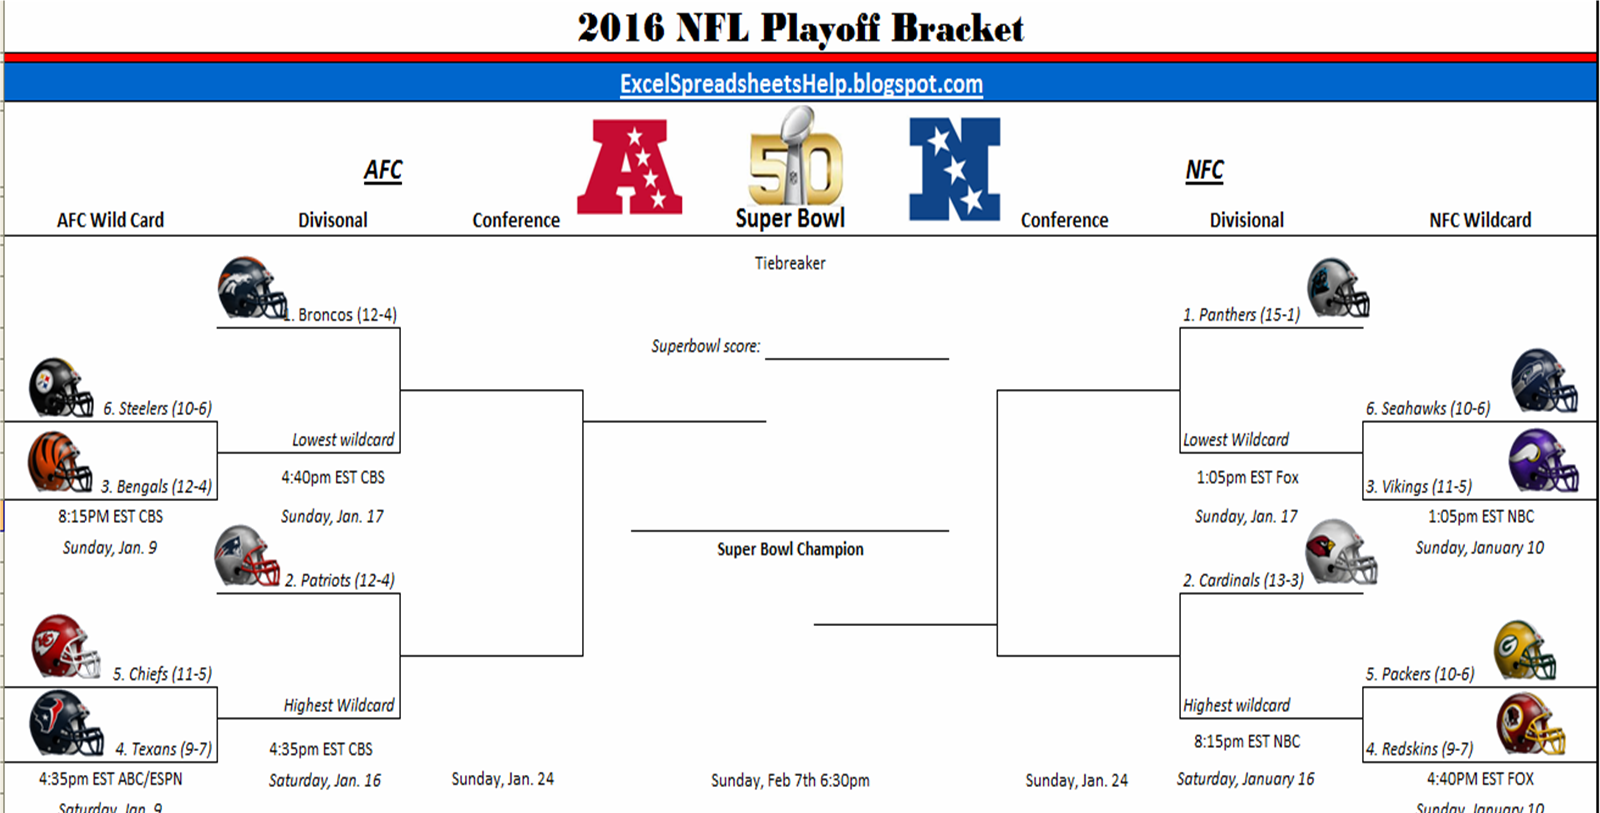 Excel Spreadsheets Help: Printable 2016 NFL Playoff Bracket